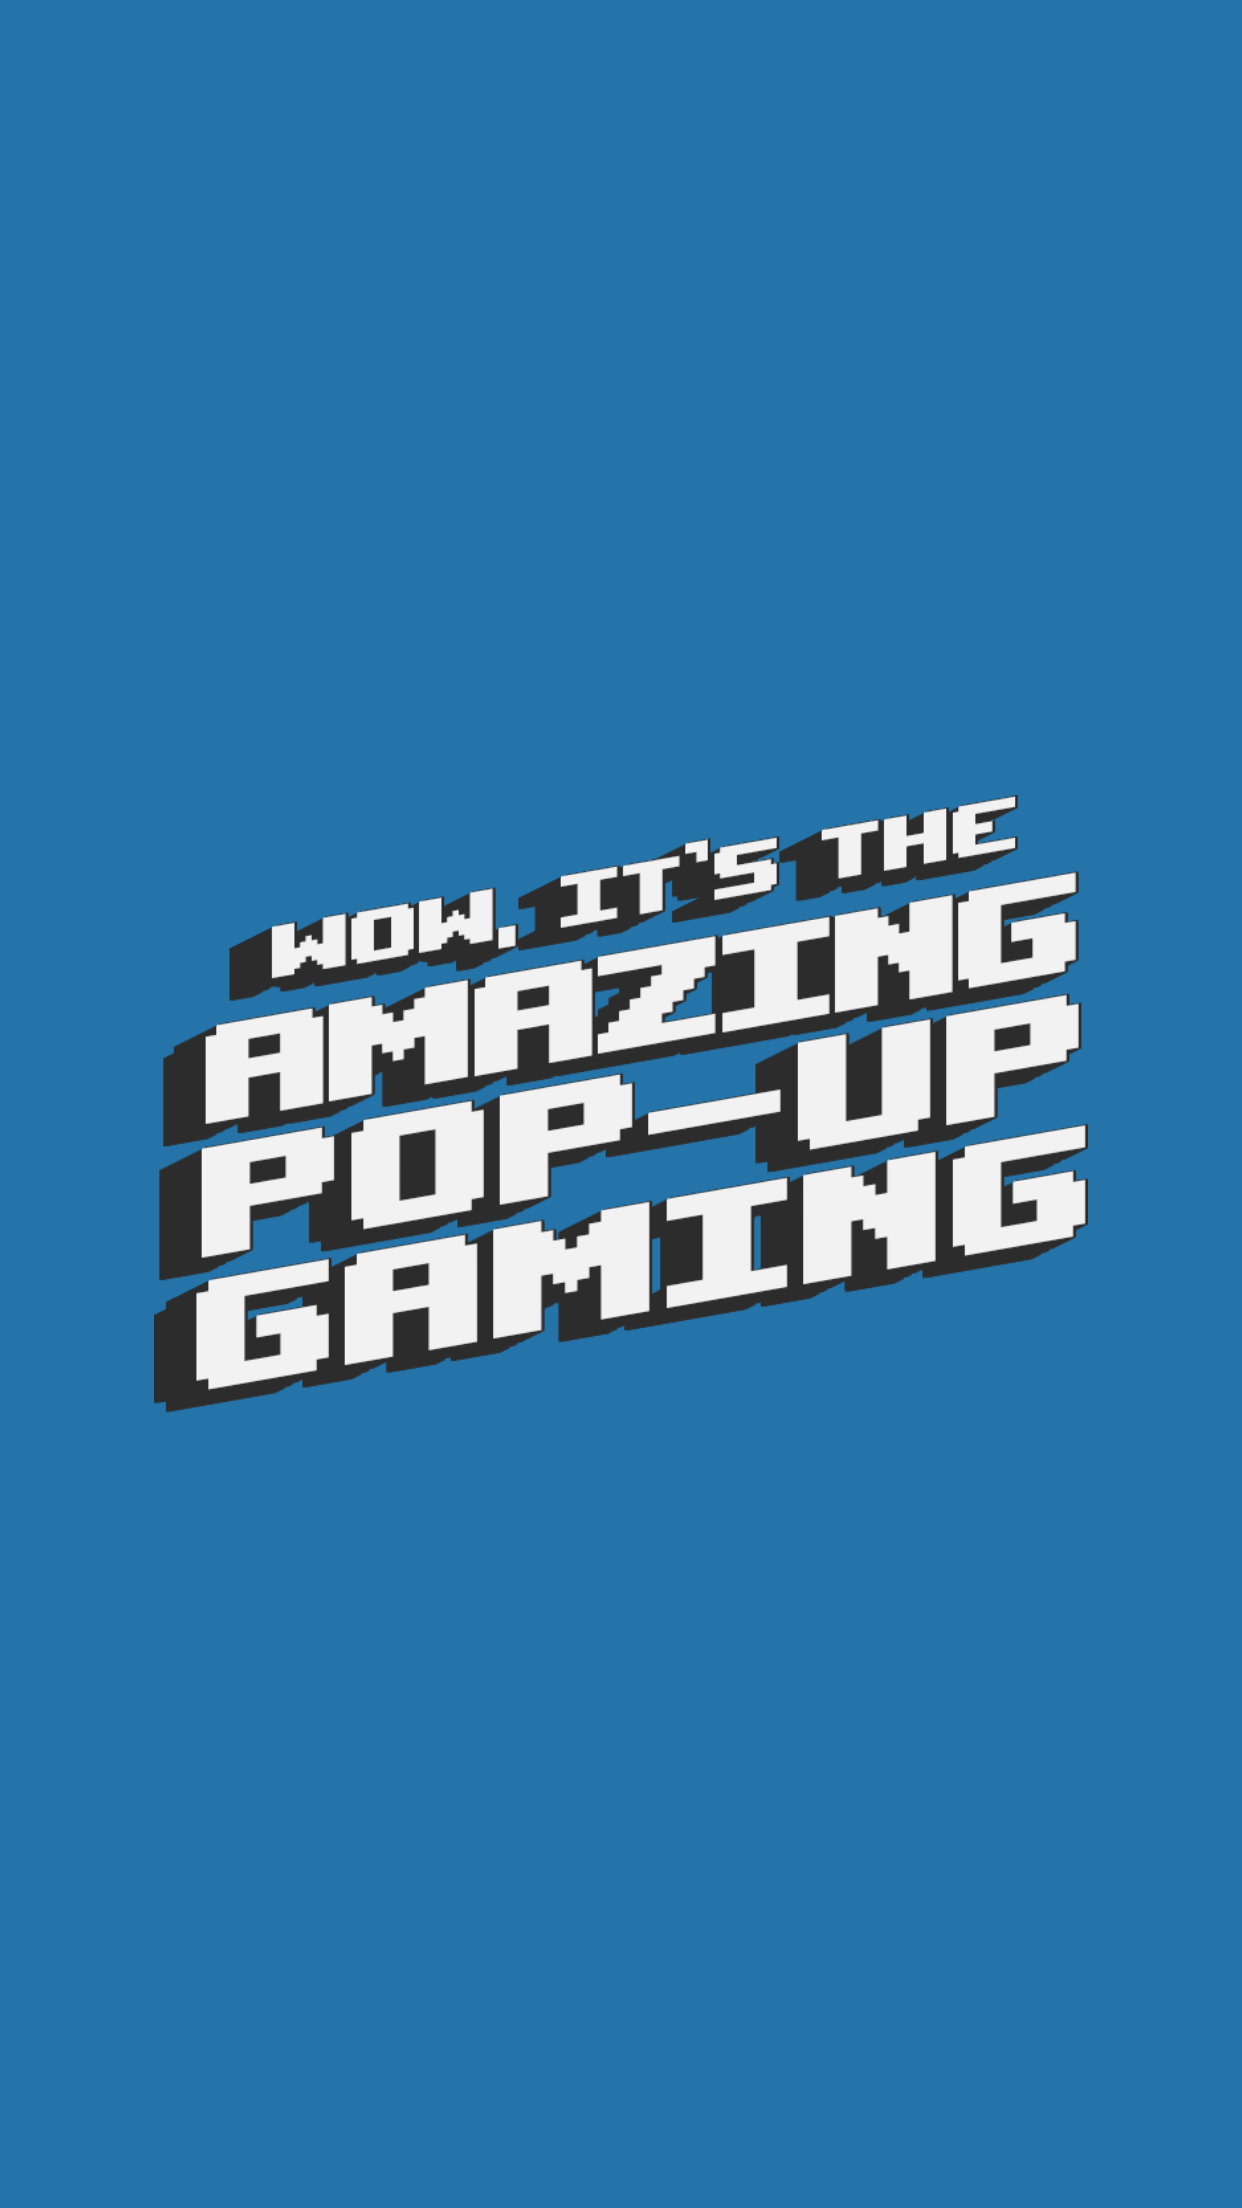 The Pop-up Gaming